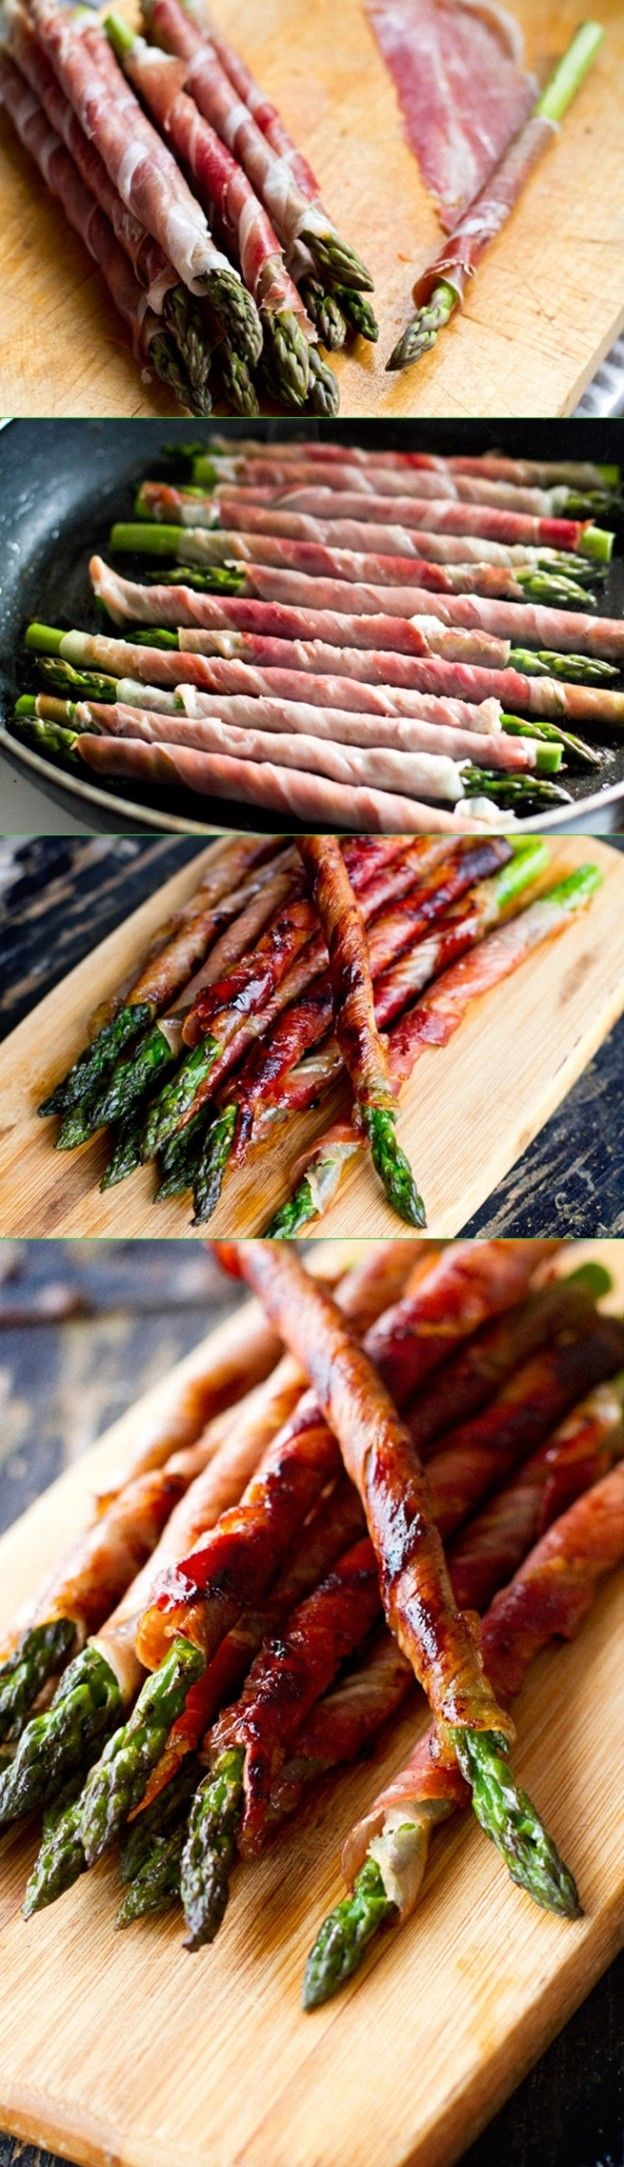 Asparagus wrapped Proscuitto...one of my favs!! Yum!